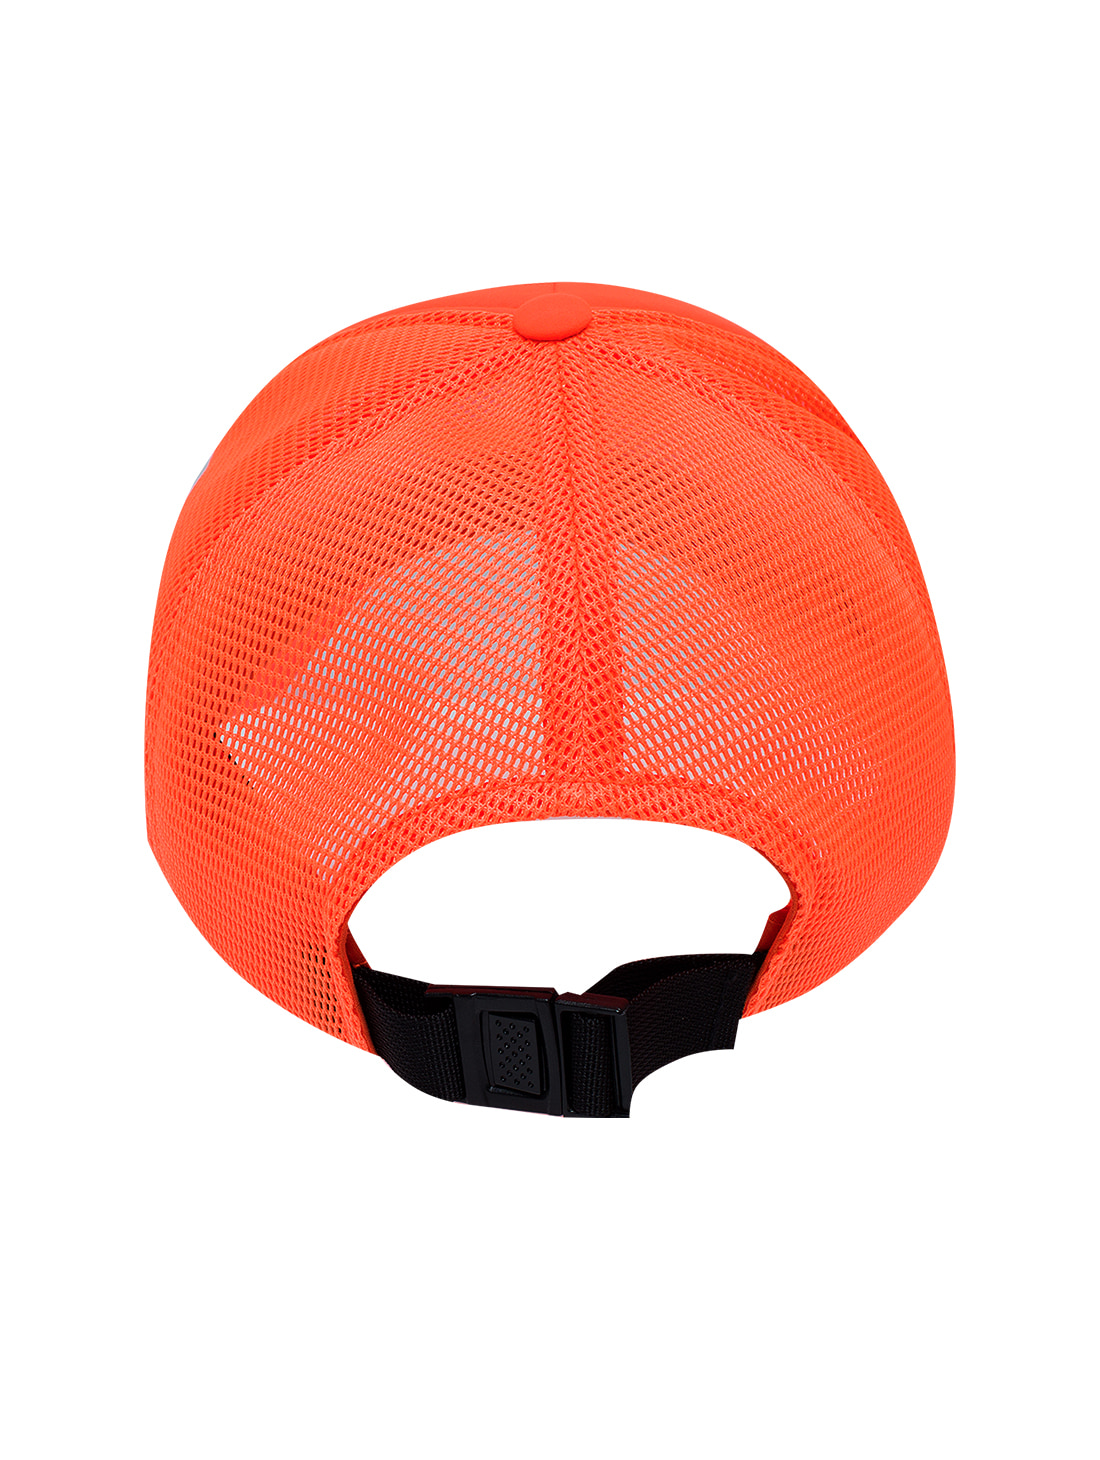 MC TRUCKER CAP - ORANGE